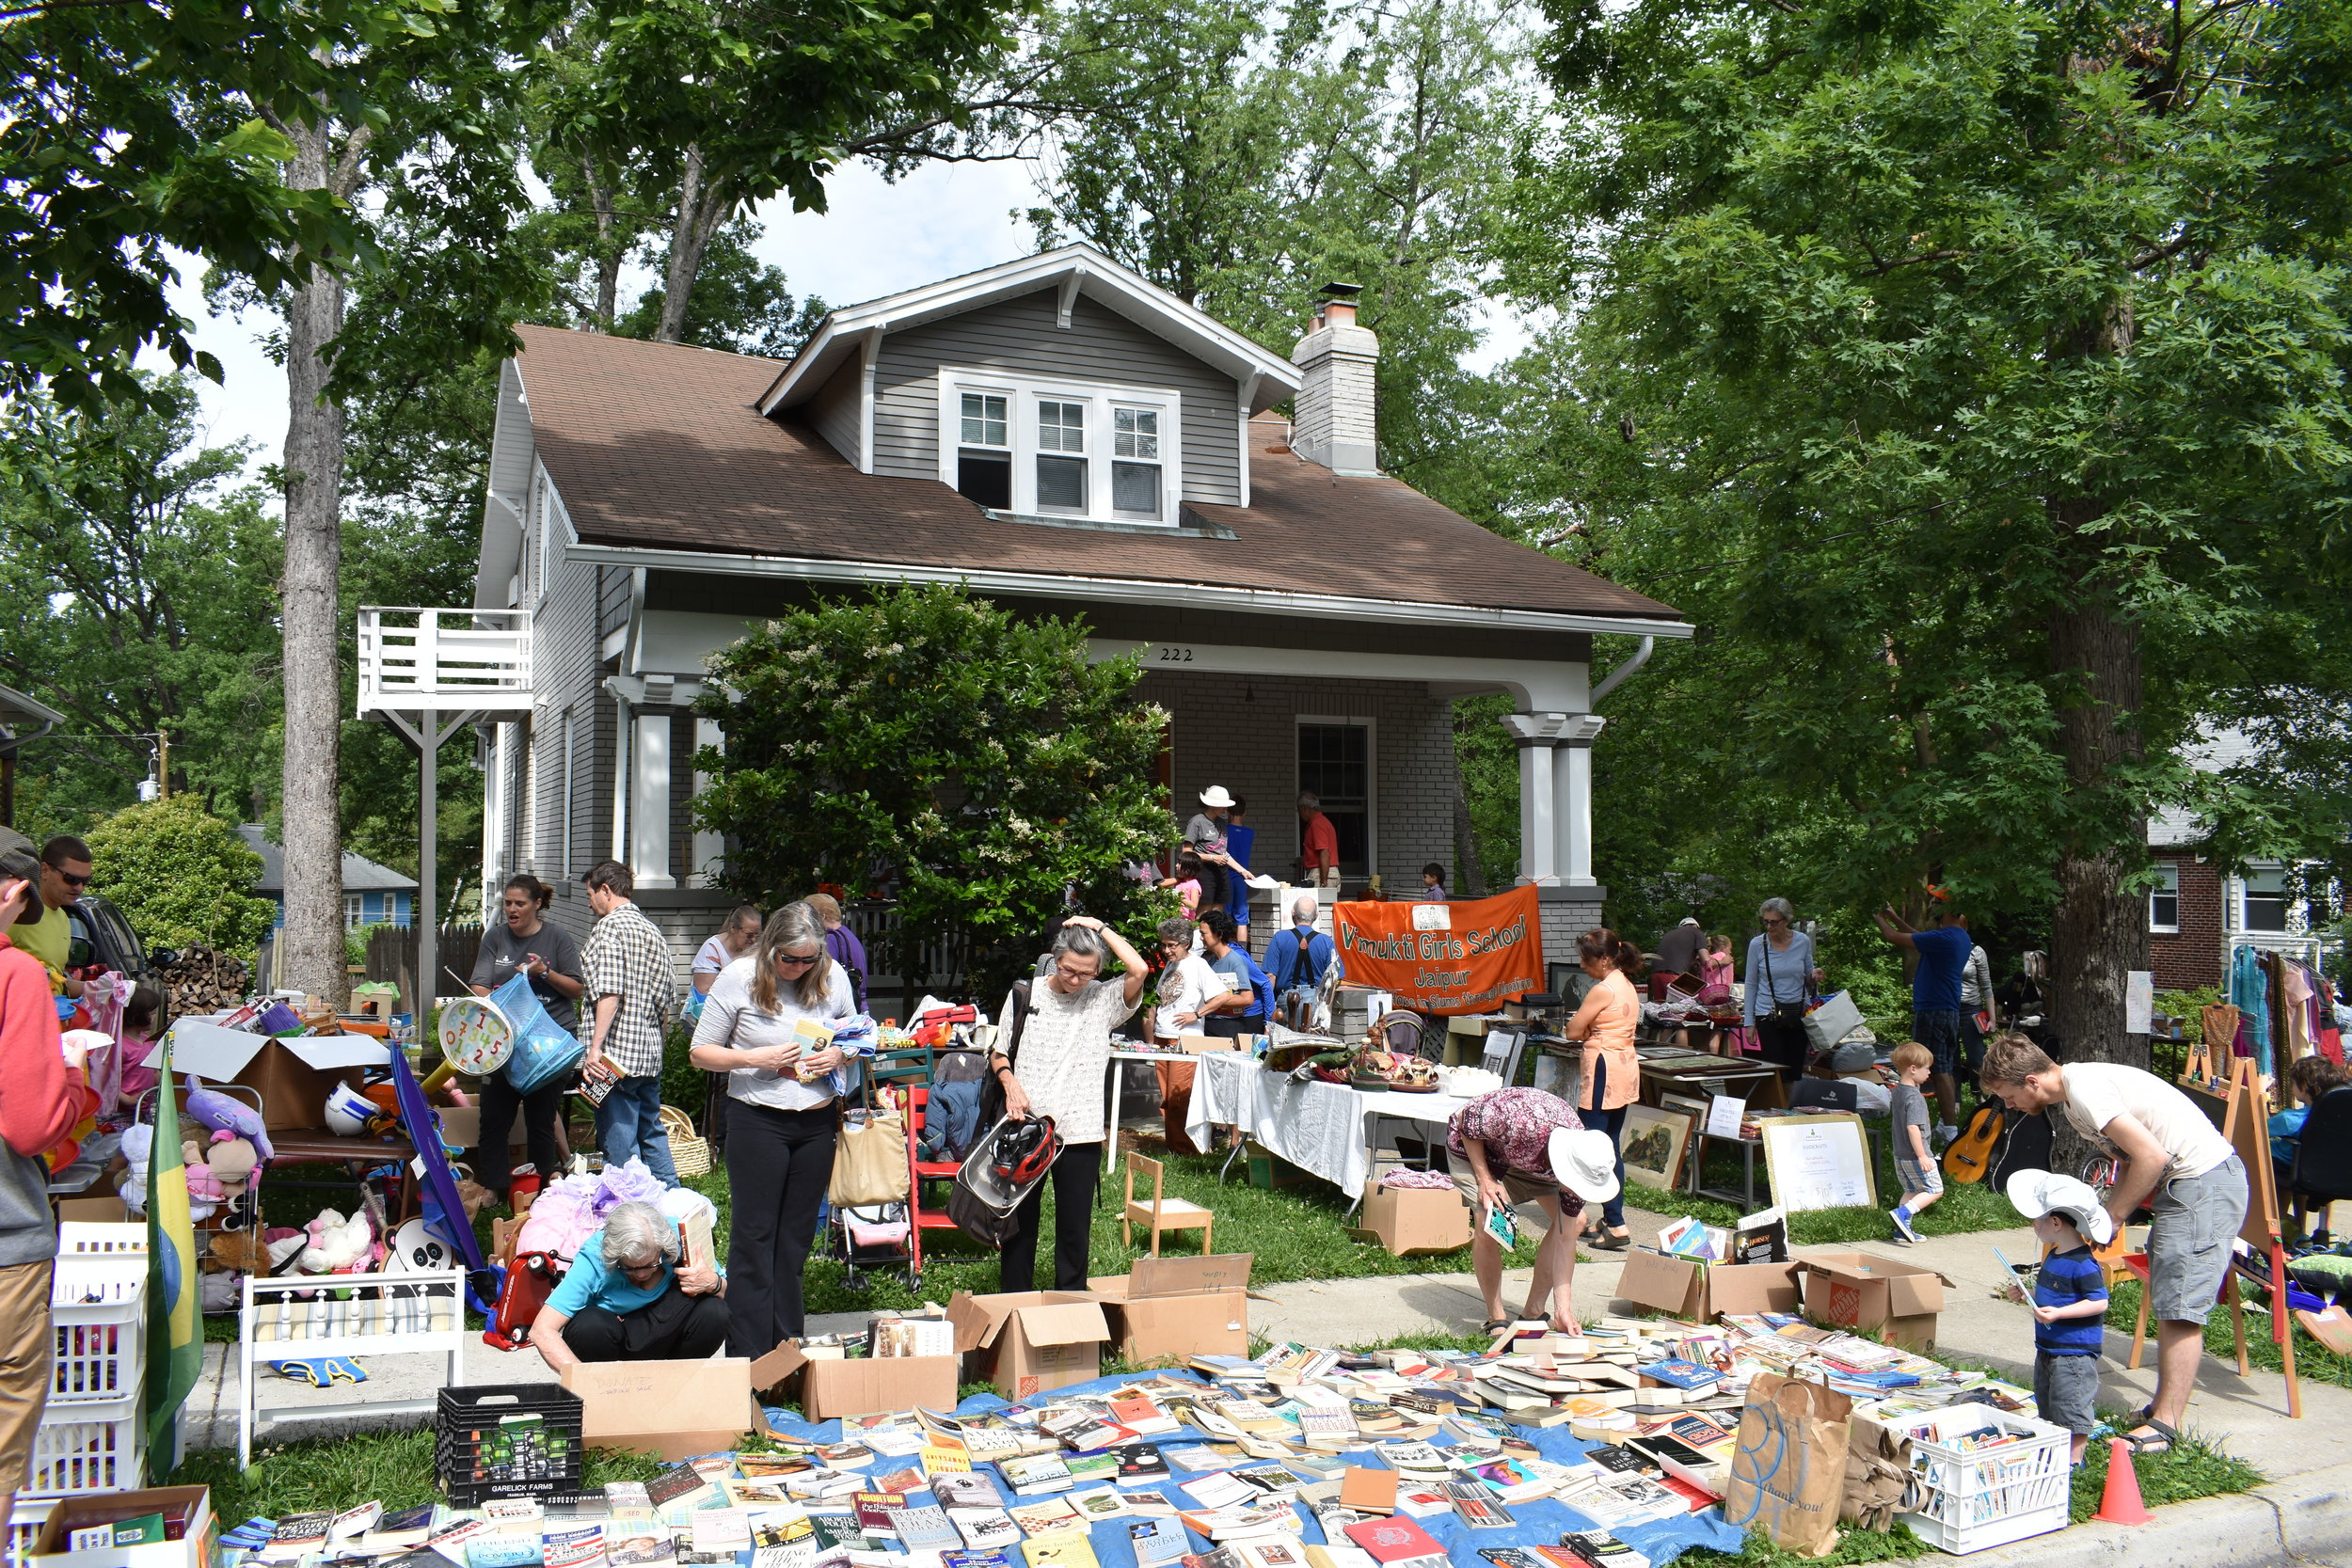 Come to our annual yard sale! - May 12, 10 AM 4 PM222 Park Ave, Takoma Park MD 20912